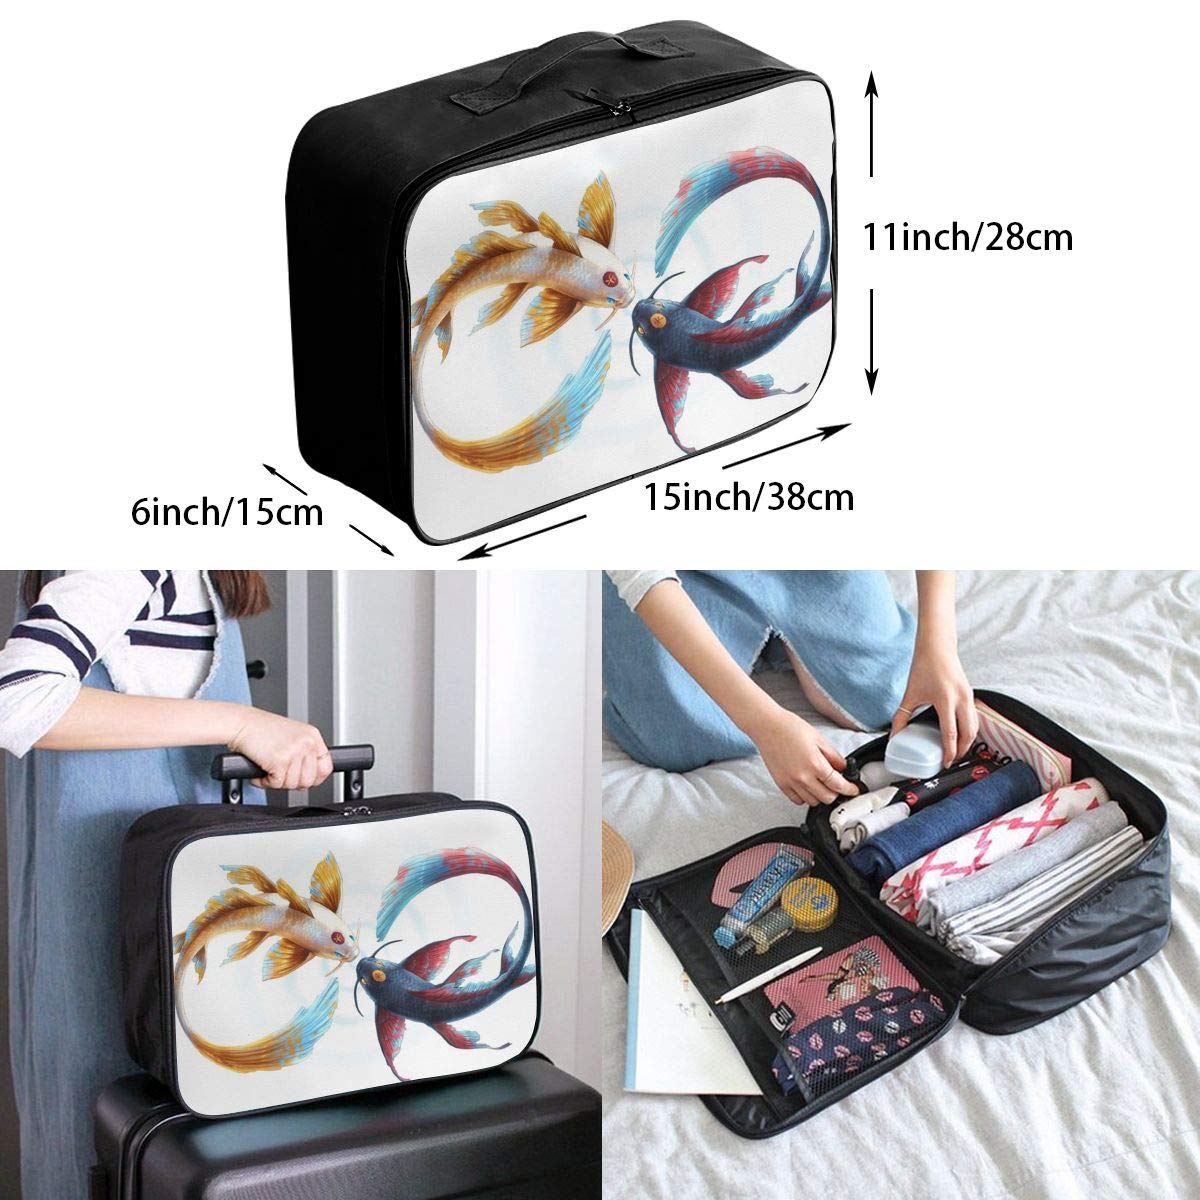 Fish Peace Circle Eternity Yin And Yang Customize Casual Portable Travel Bag Suitcase Storage Bag Luggage Packing Tote Bag Trolley Bag